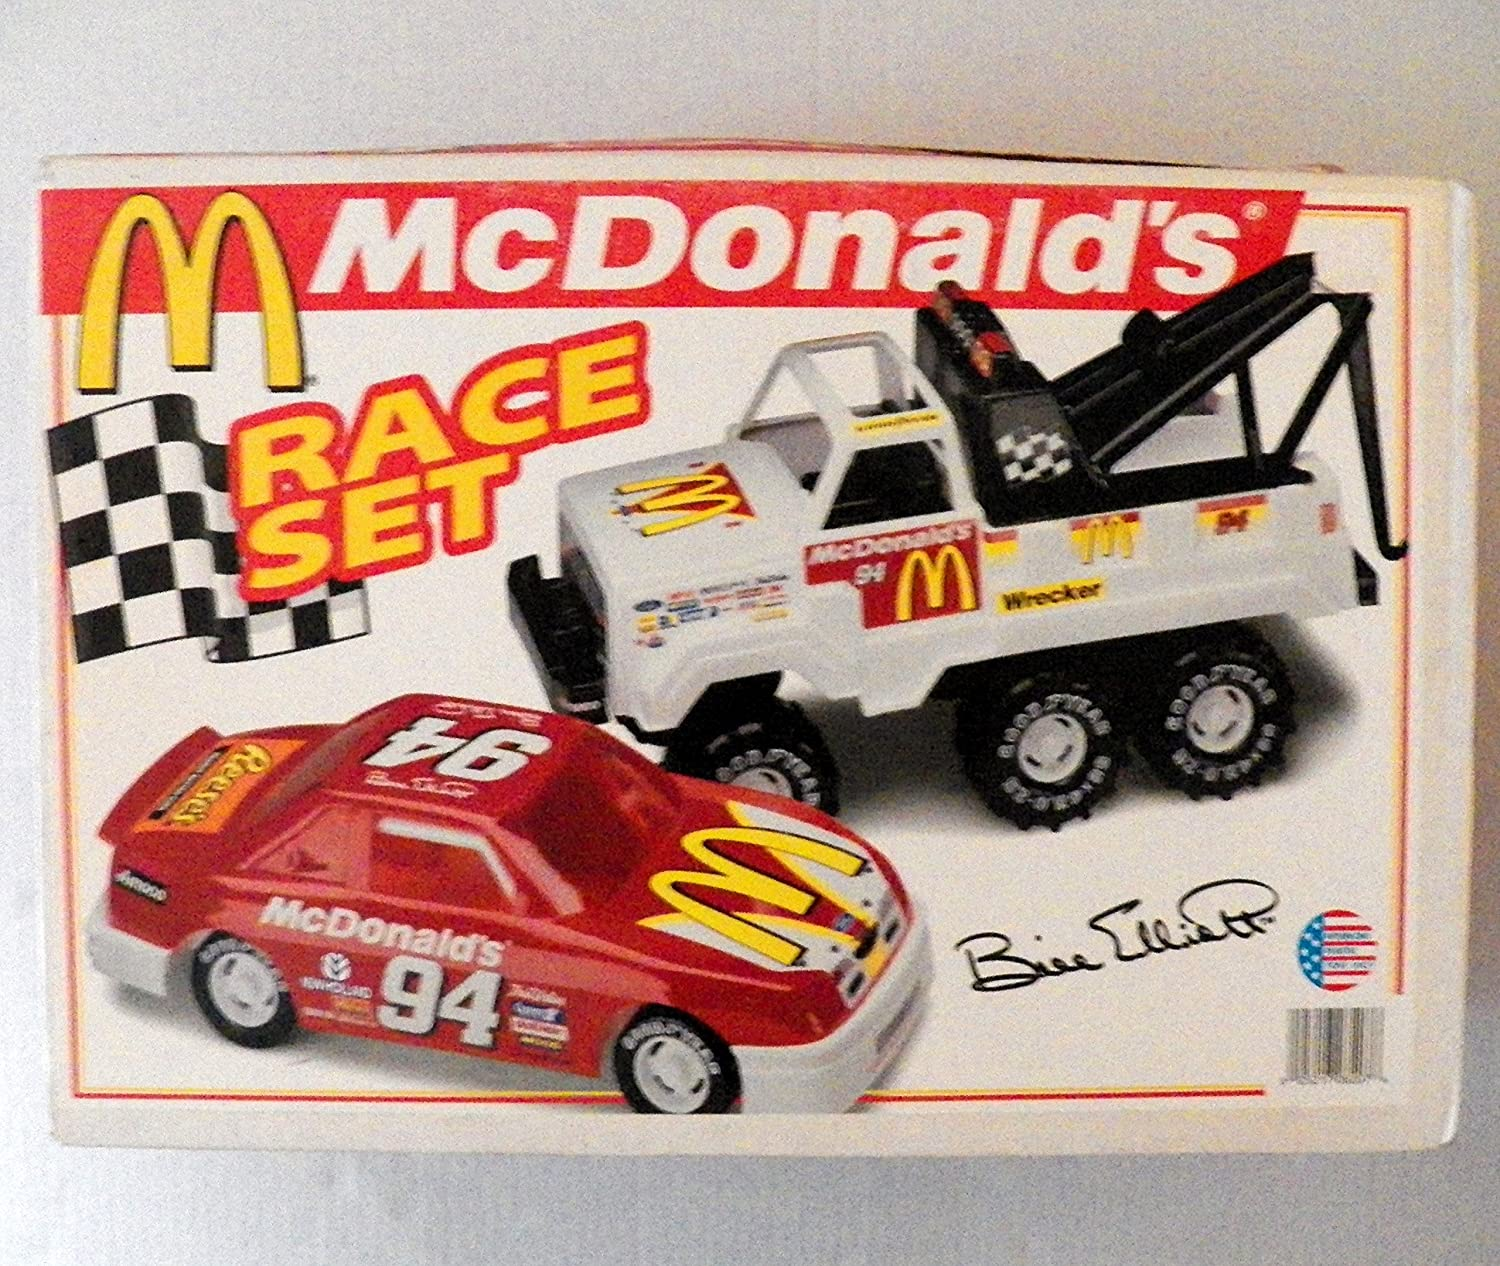 Amazon com mcdonalds race set no 8207 bill elliot red 94 stock car and wrecker truck set toys games